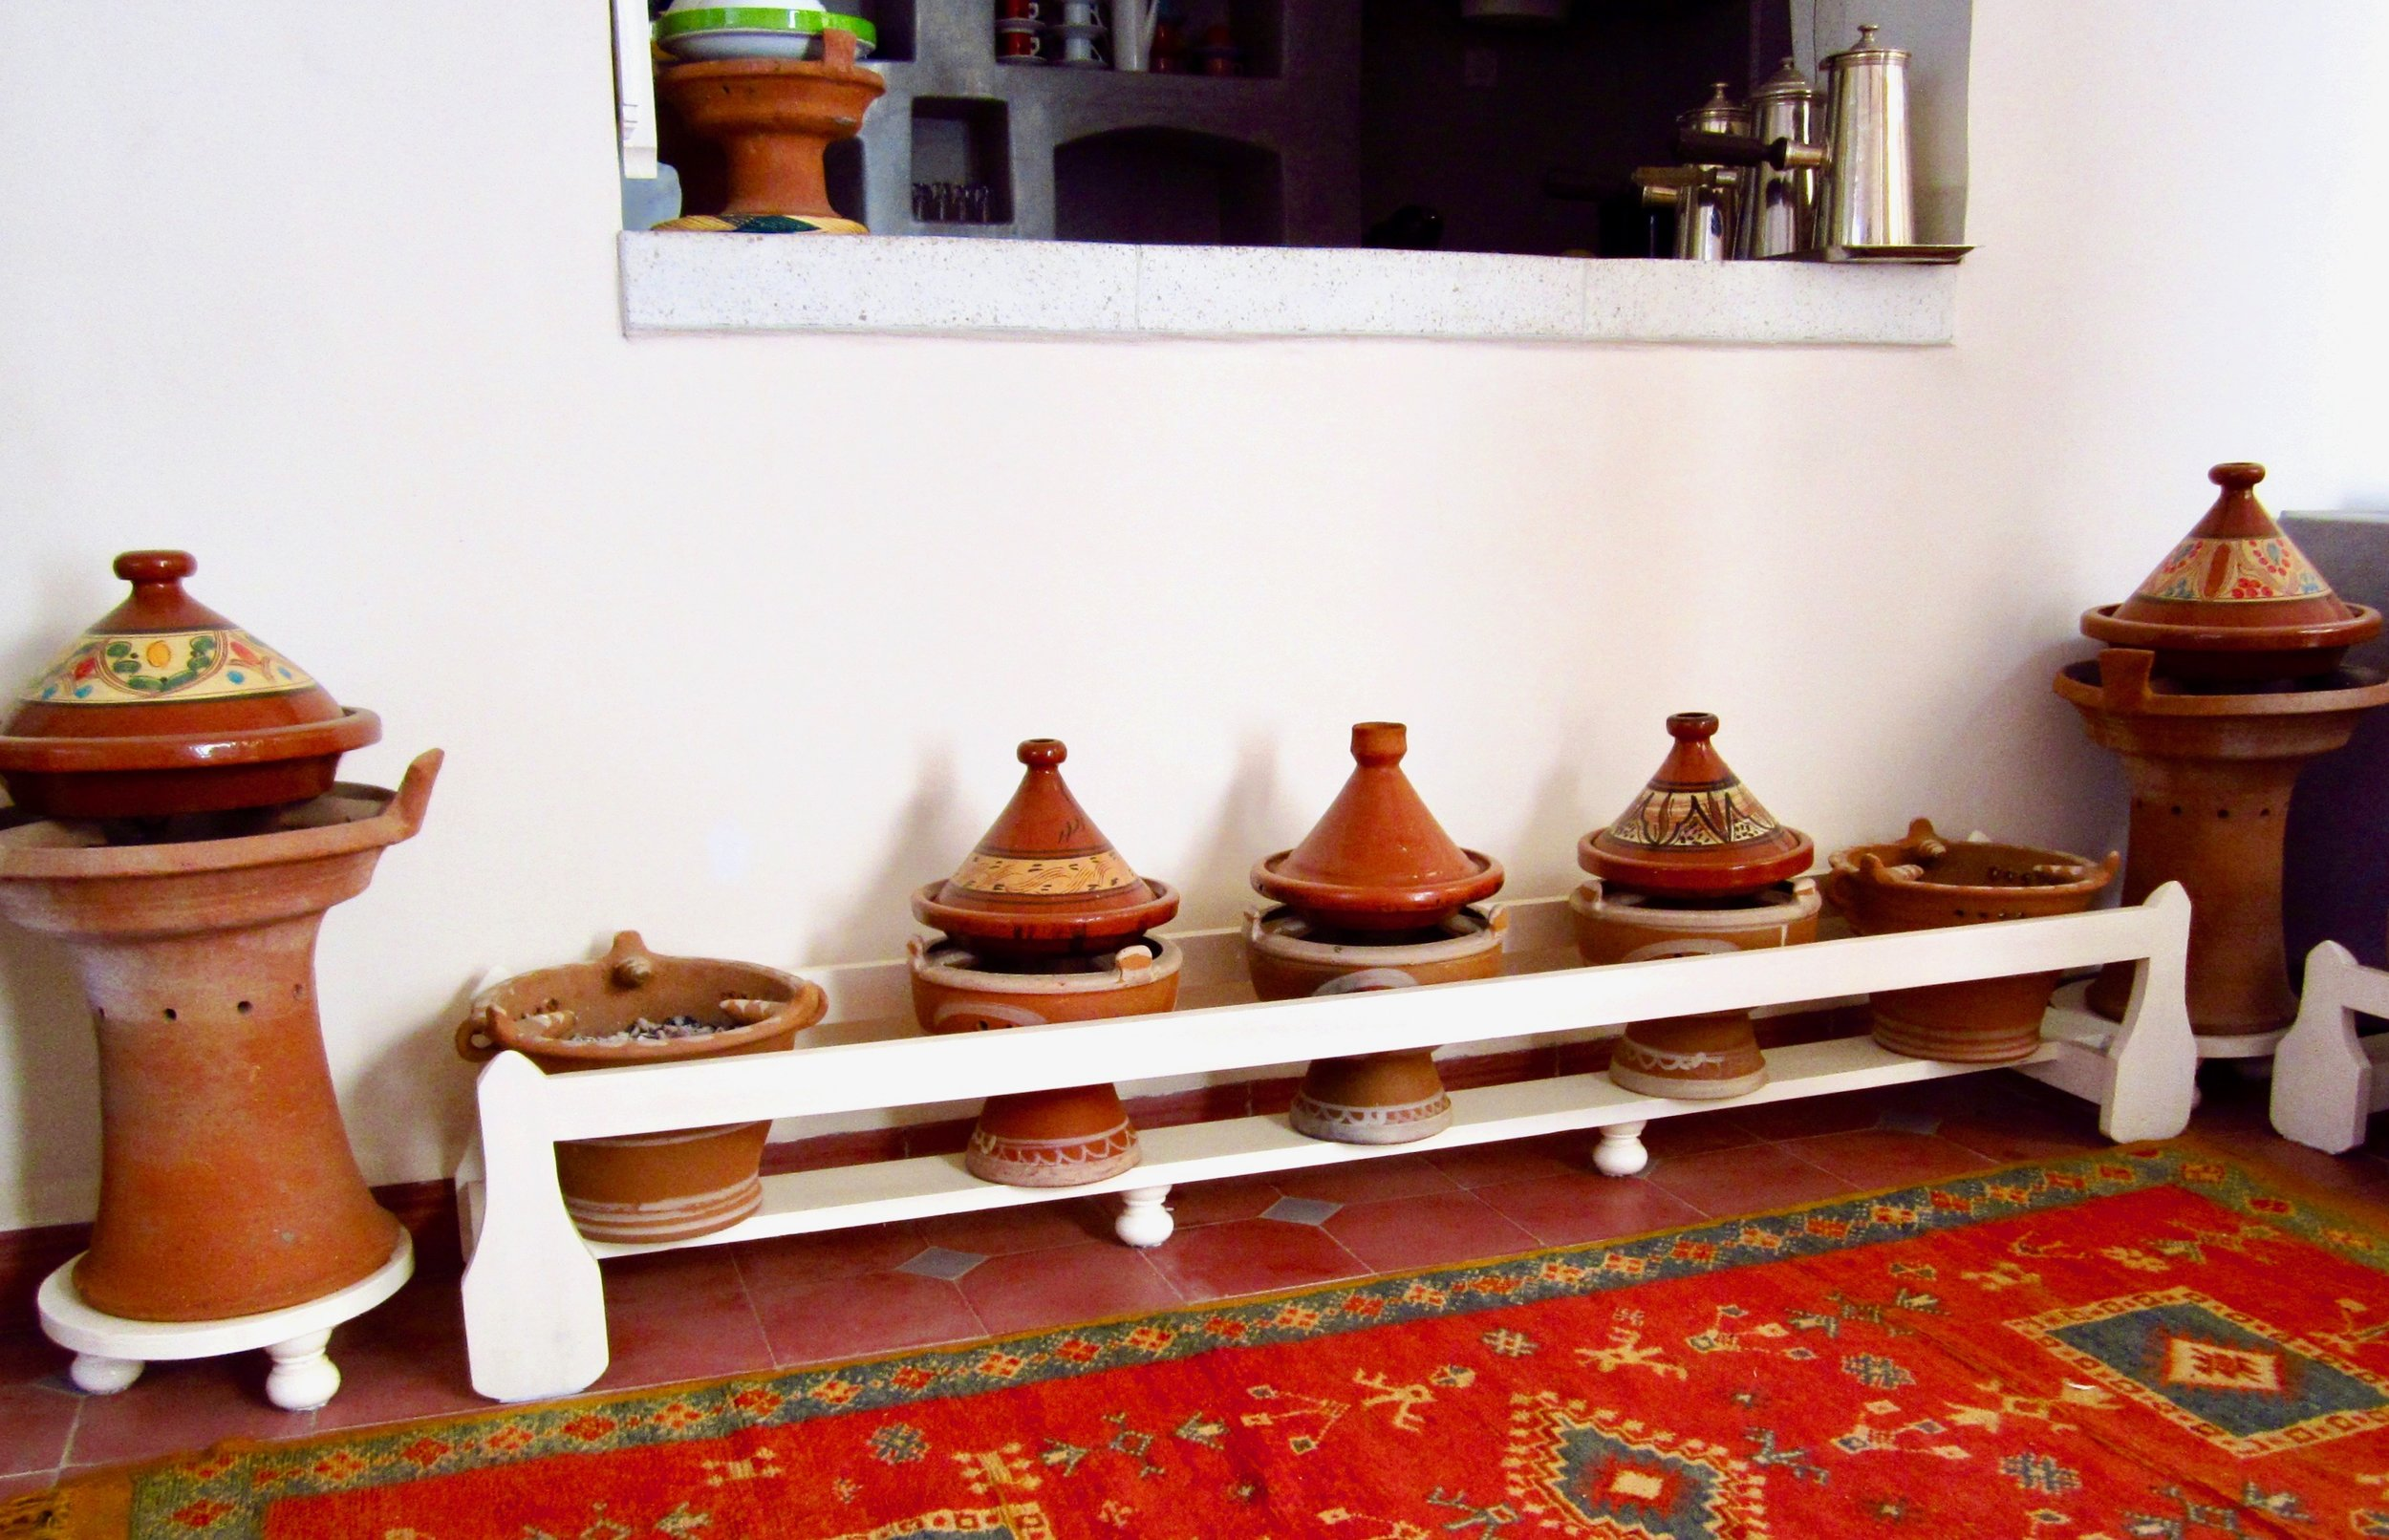 Tajines- a Morocan kitchen appliance traditionally used to cook meat and vegetables.